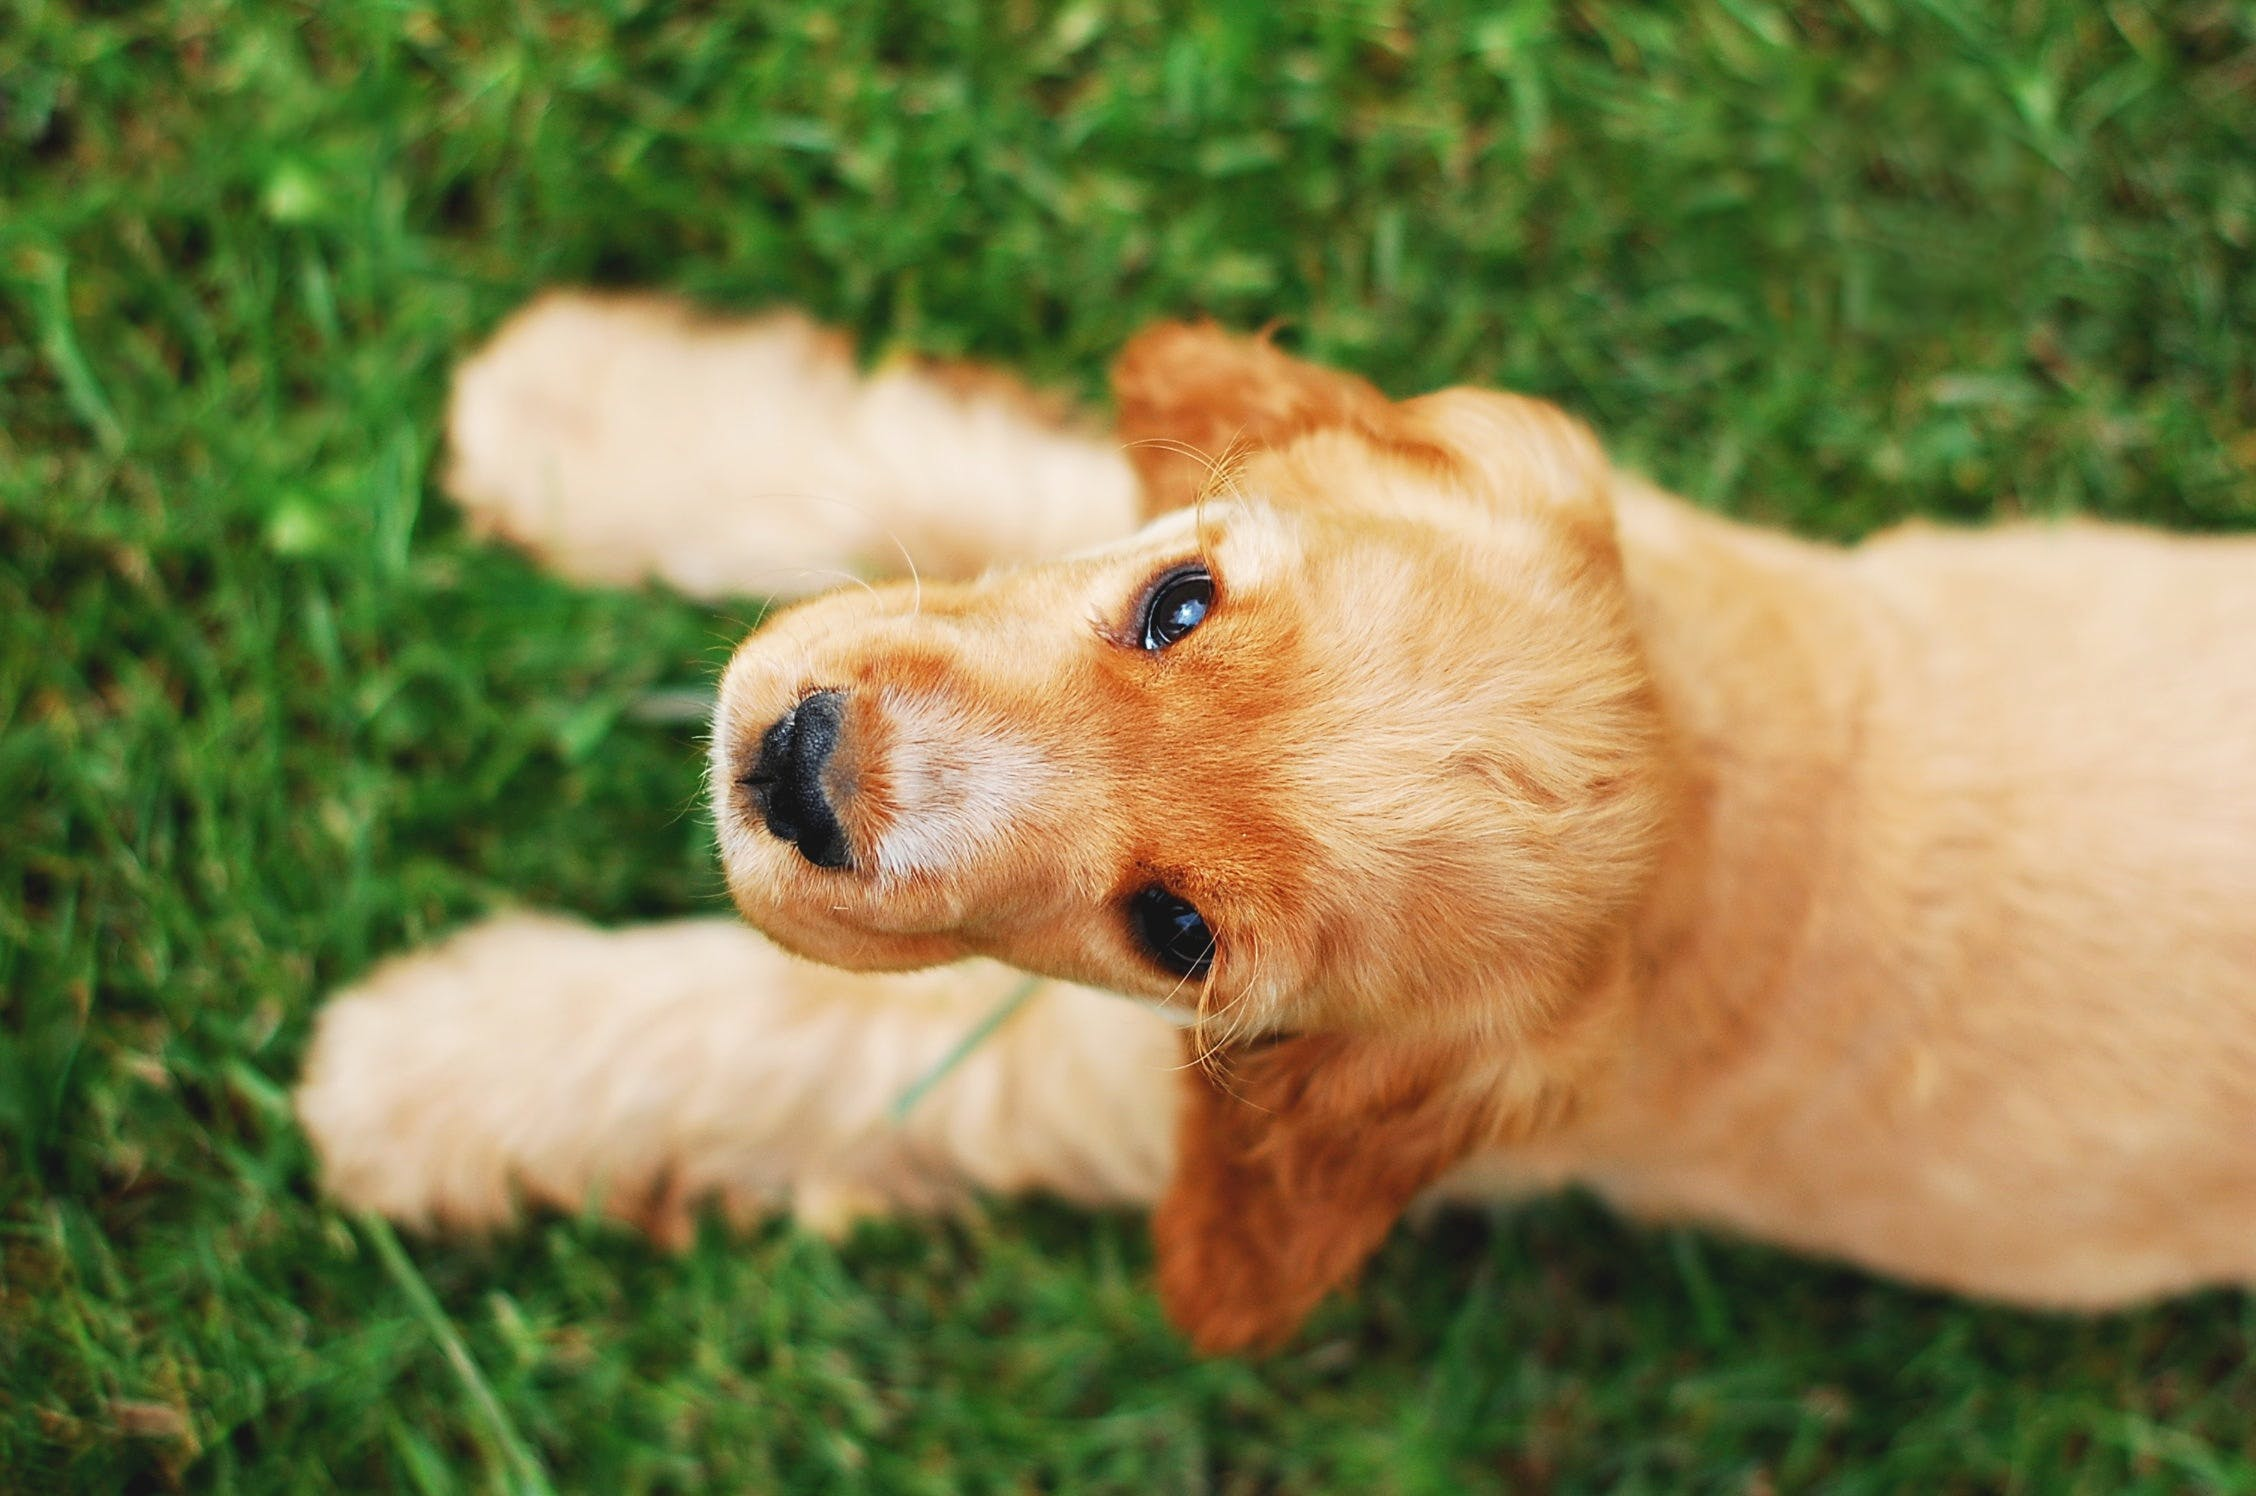 Long-coated Brown Puppy Lying on Grass Field